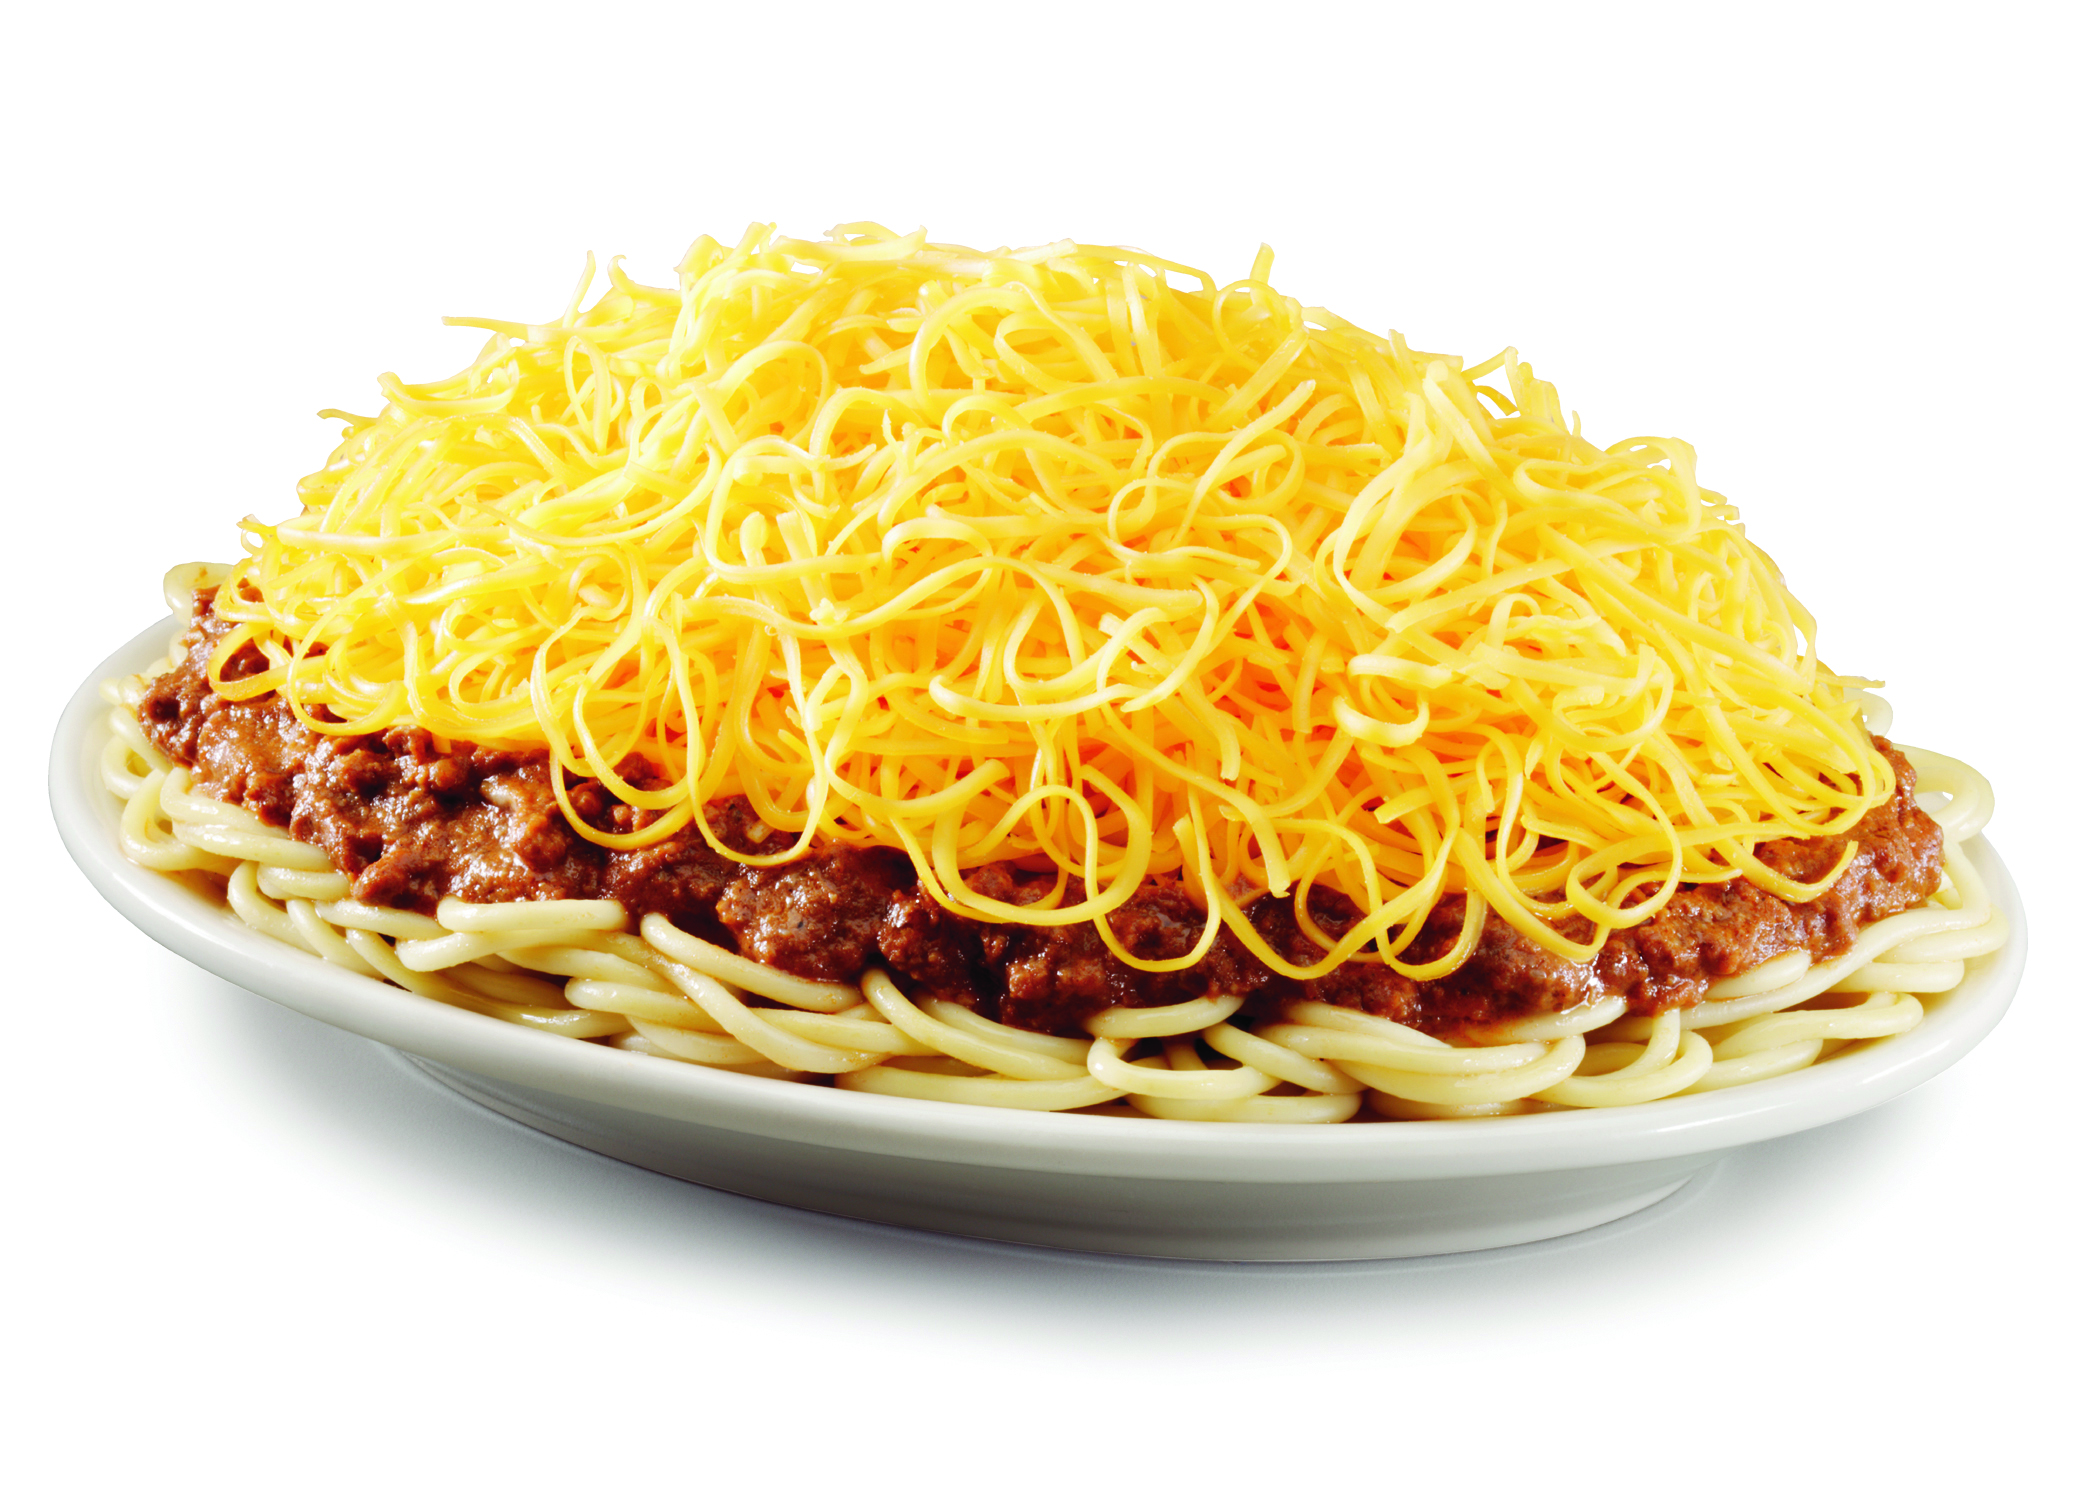 Cincinnati Chili - American Food Roots